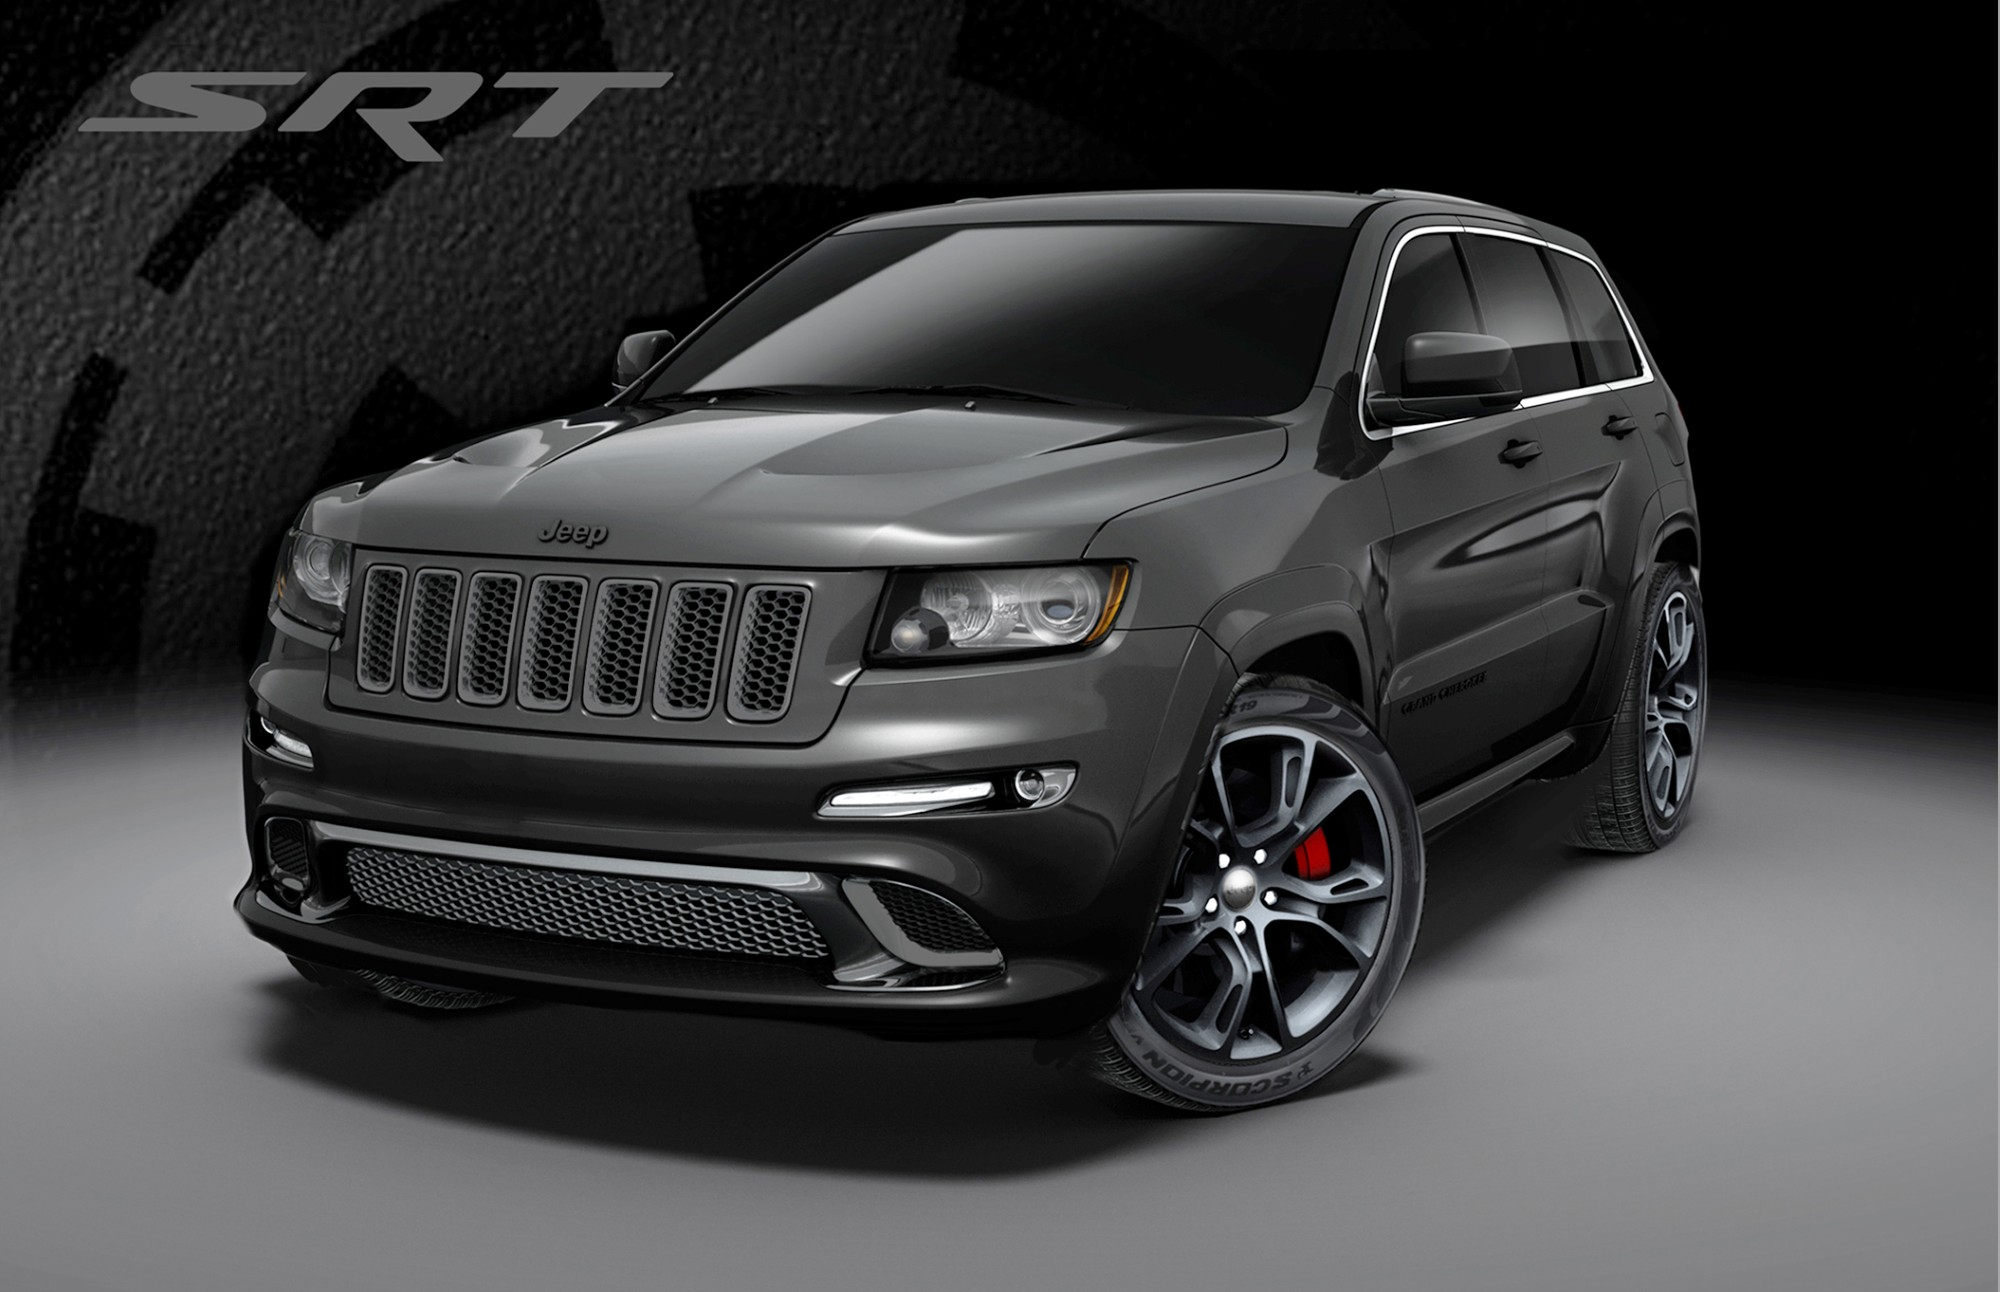 2013 Jeep Grand Cherokee SRT8 Special Editions: Alpine, Vapor